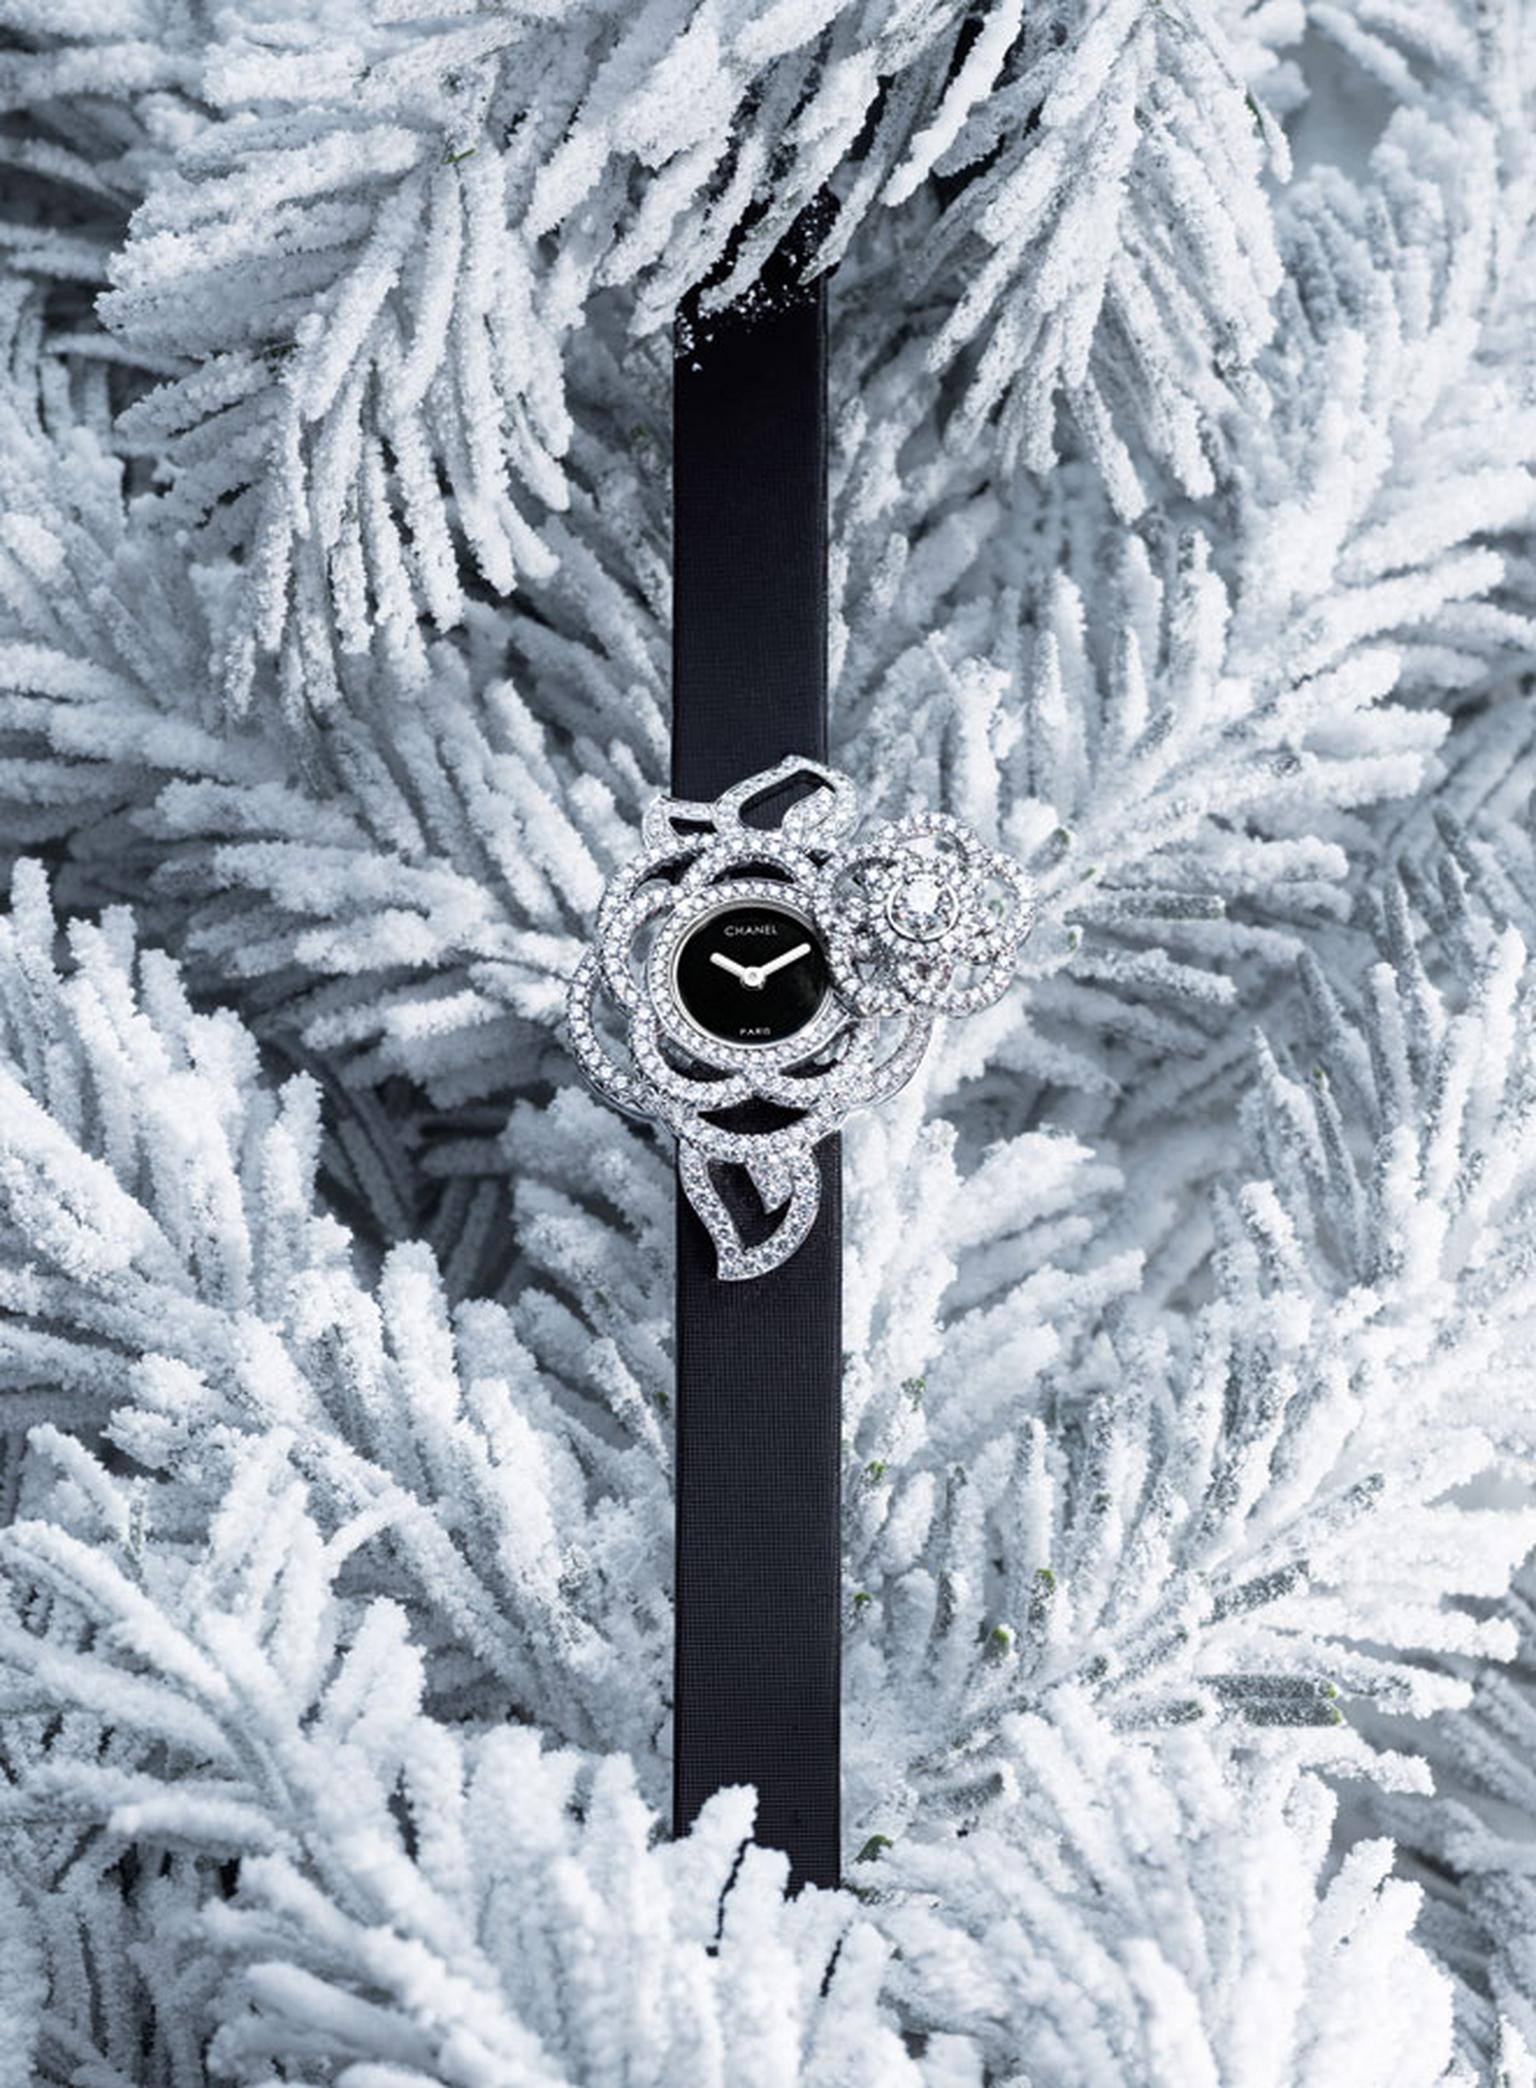 Chanel Came´lia Brode´ secret wtch in white gold and diamonds with black satin strap. Open 2